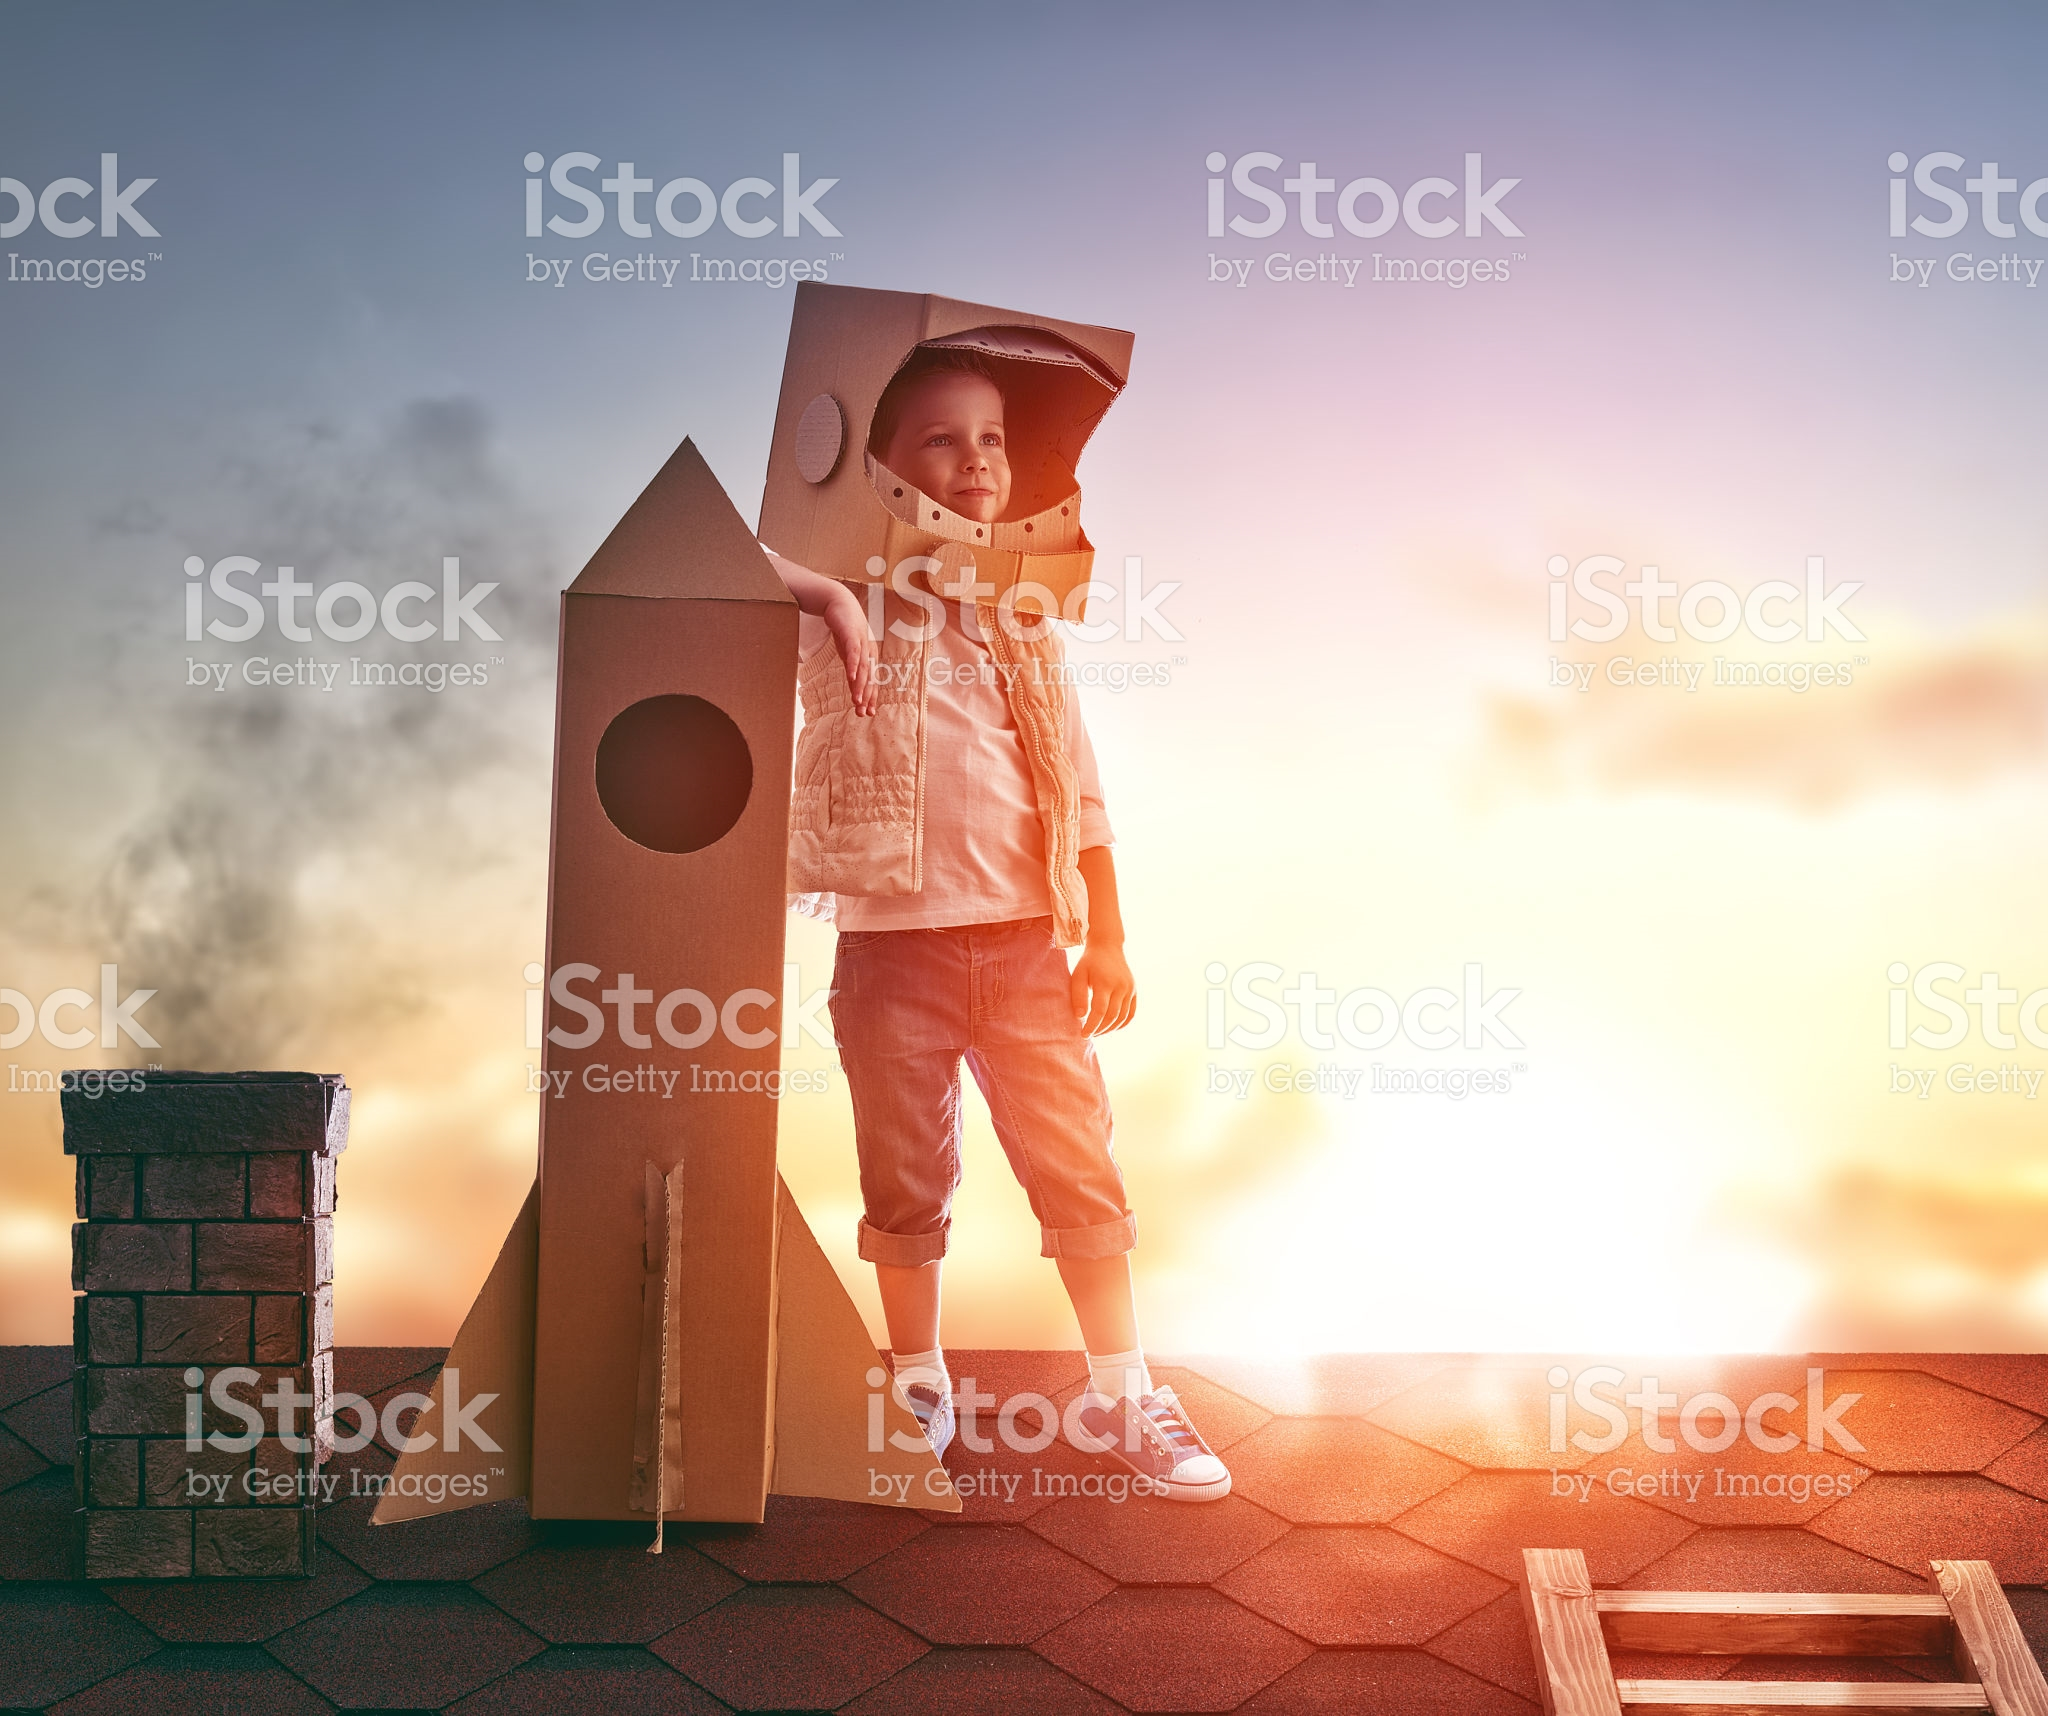 Little child boy plays astronaut. Child on the background of sunset sky. Child boy in an astronaut costume standing on the roof of the house and looking at the sky and dreaming of becoming a spaceman.